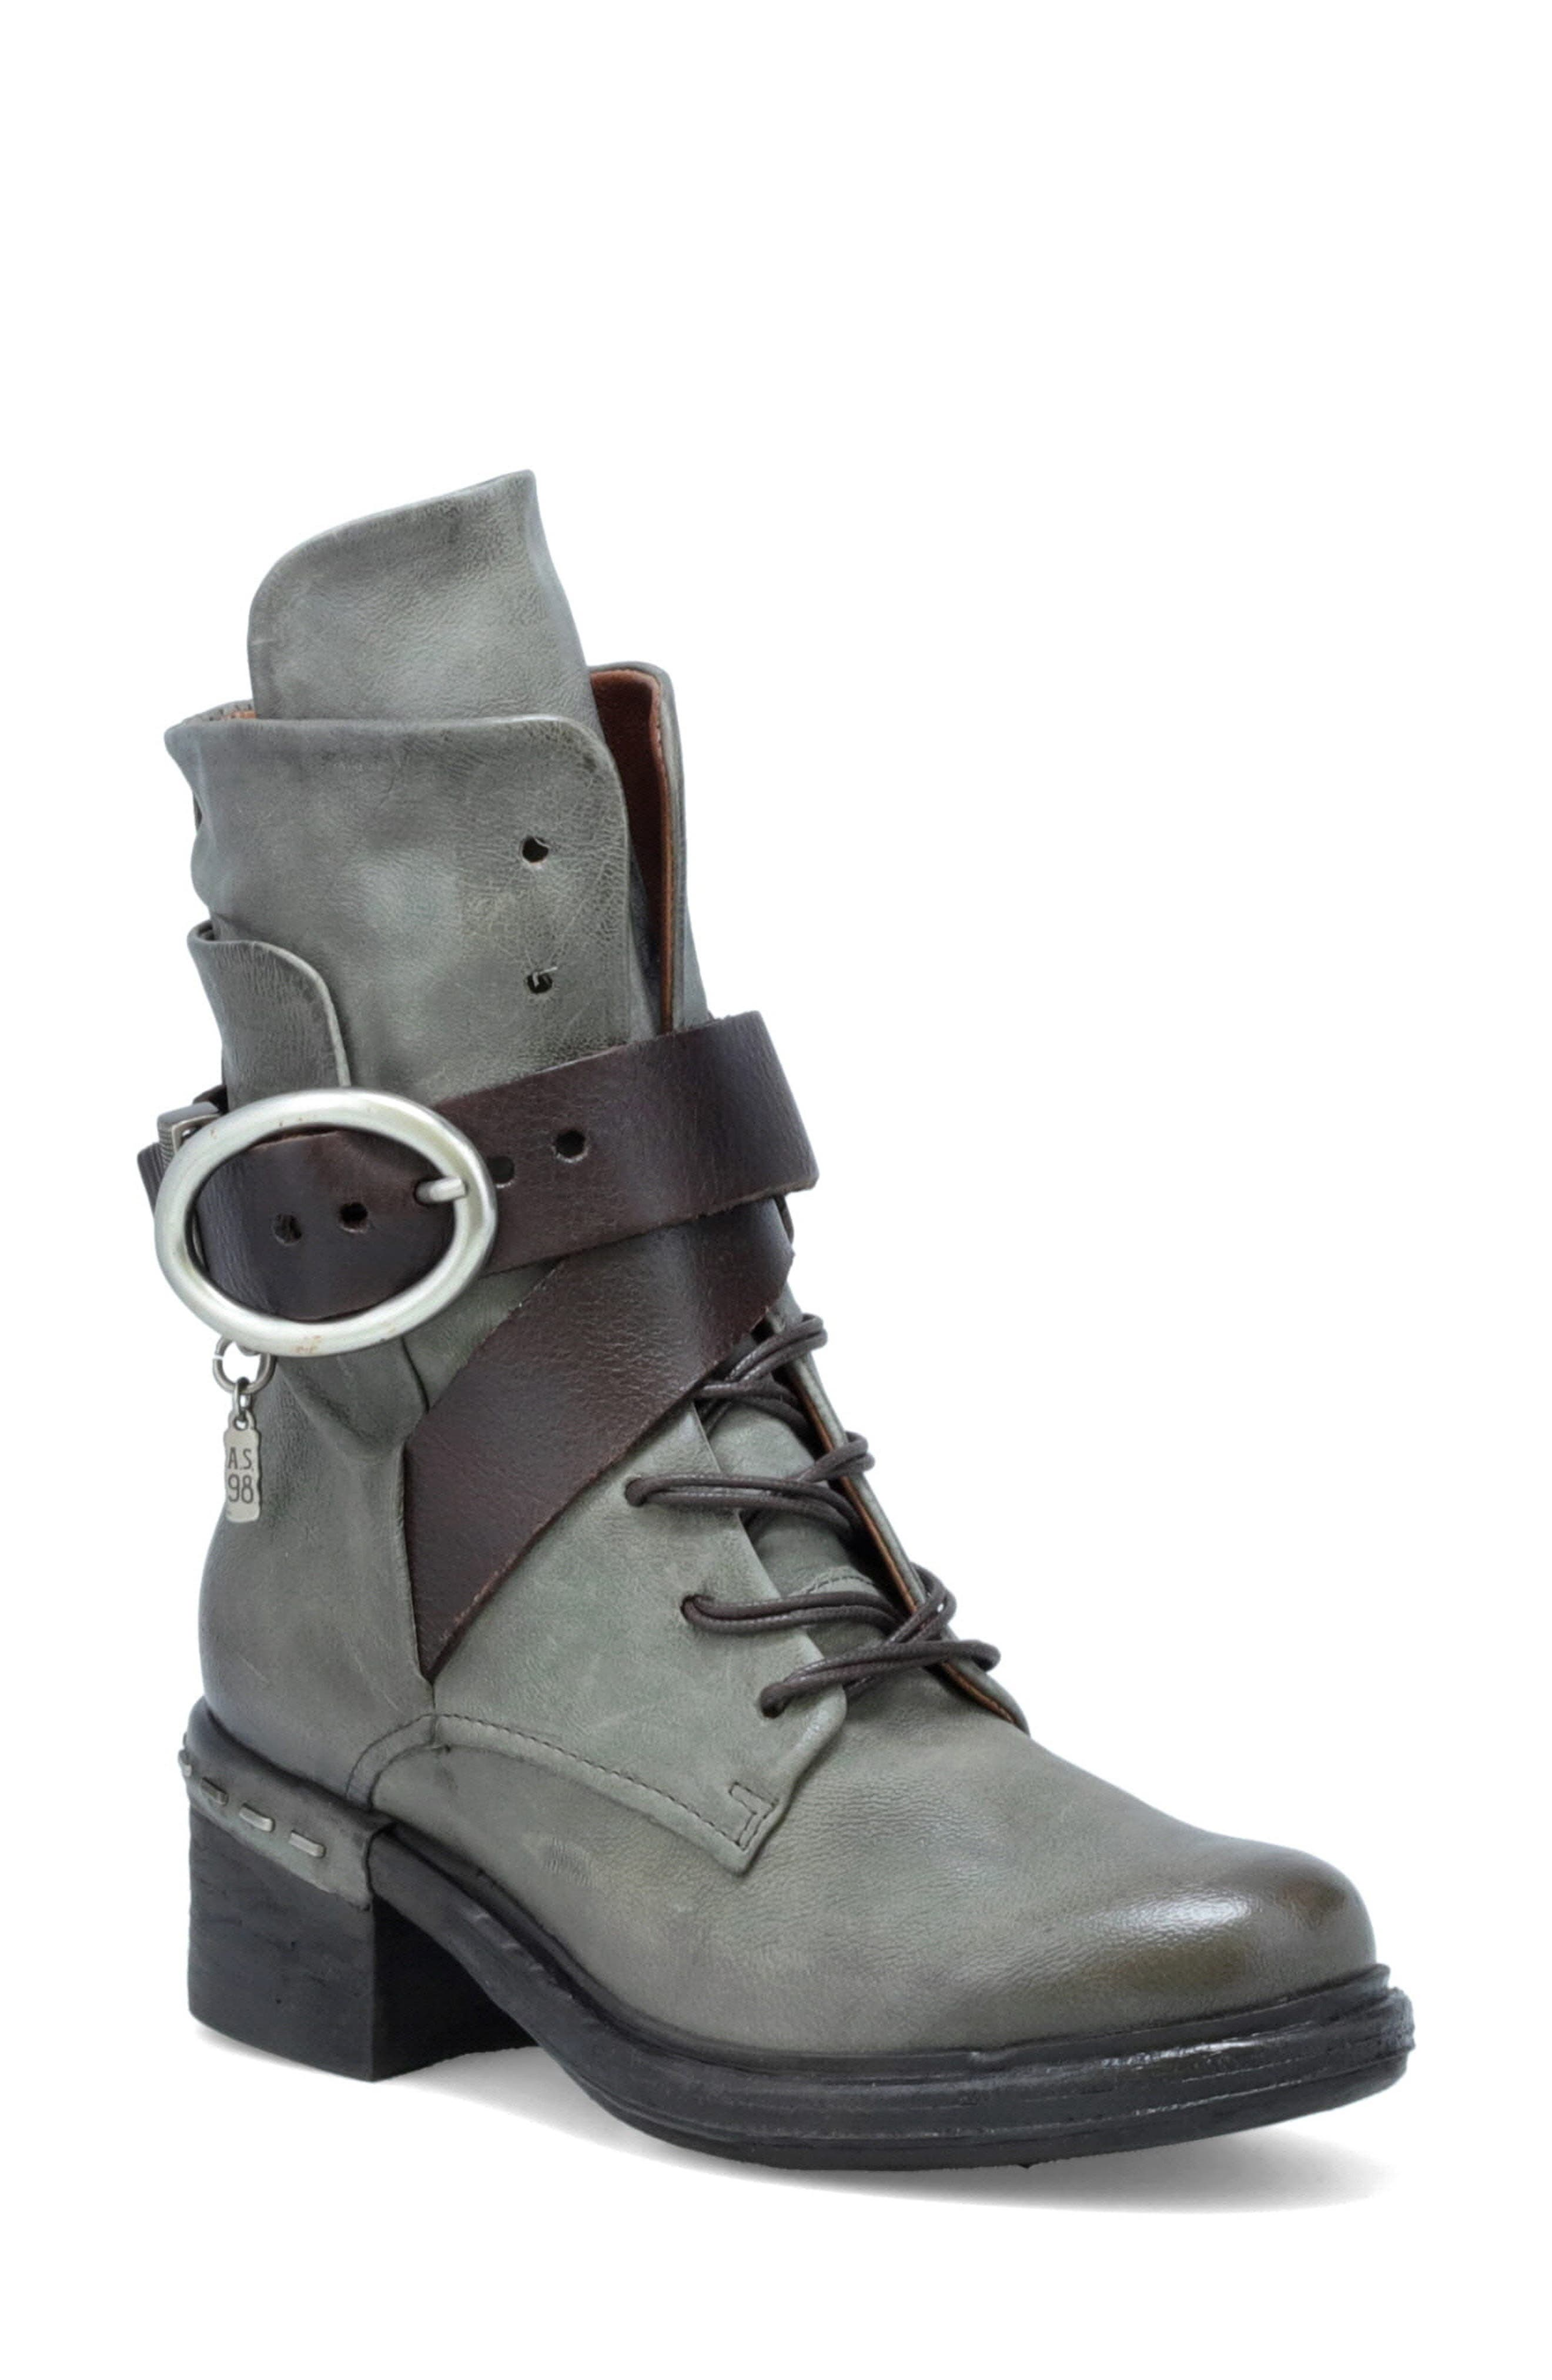 Women's A.s.98 Newhall Buckle Bootie